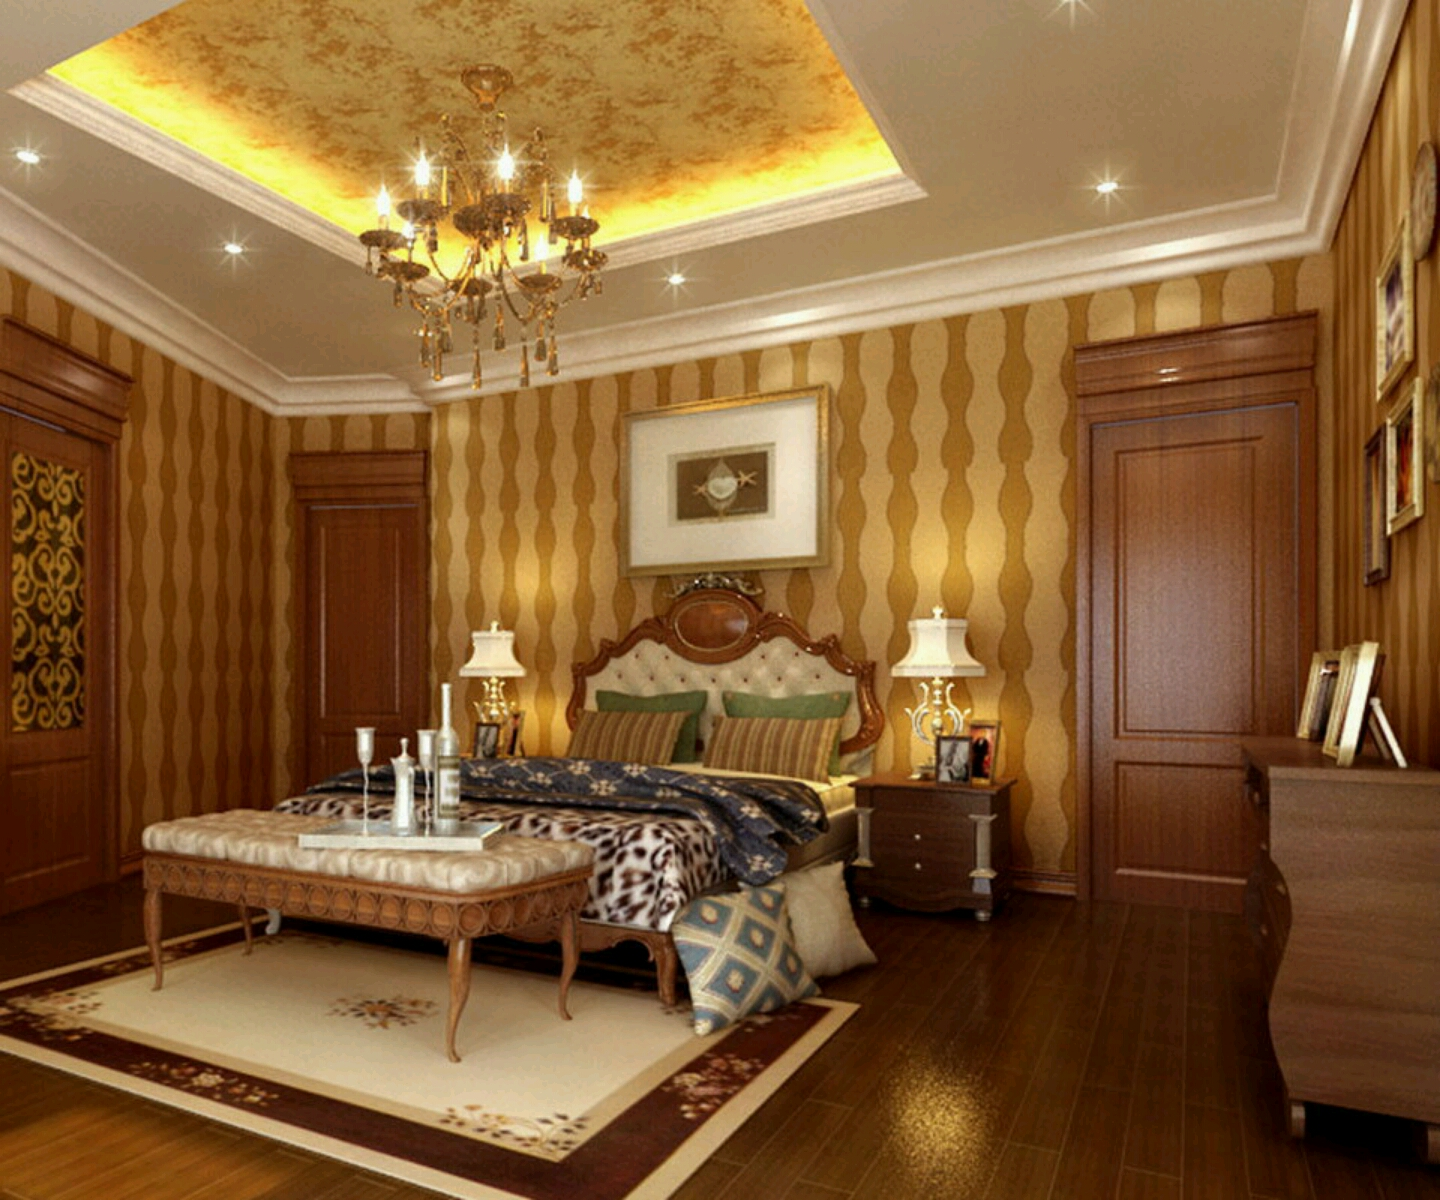 New home designs latest modern bedrooms designs ceiling for Home bedroom design photos